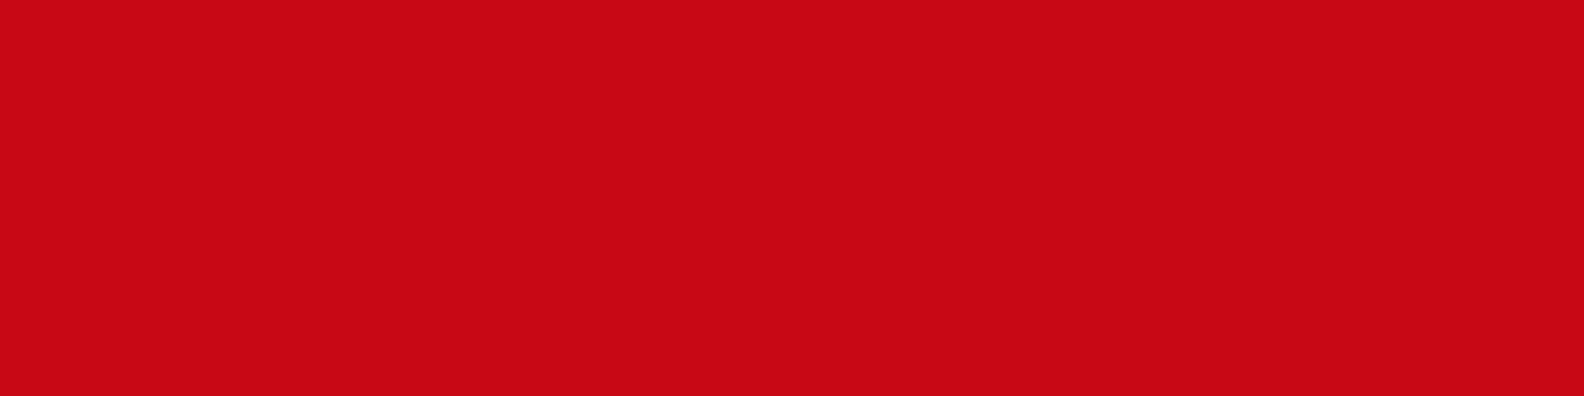 1584x396 Venetian Red Solid Color Background